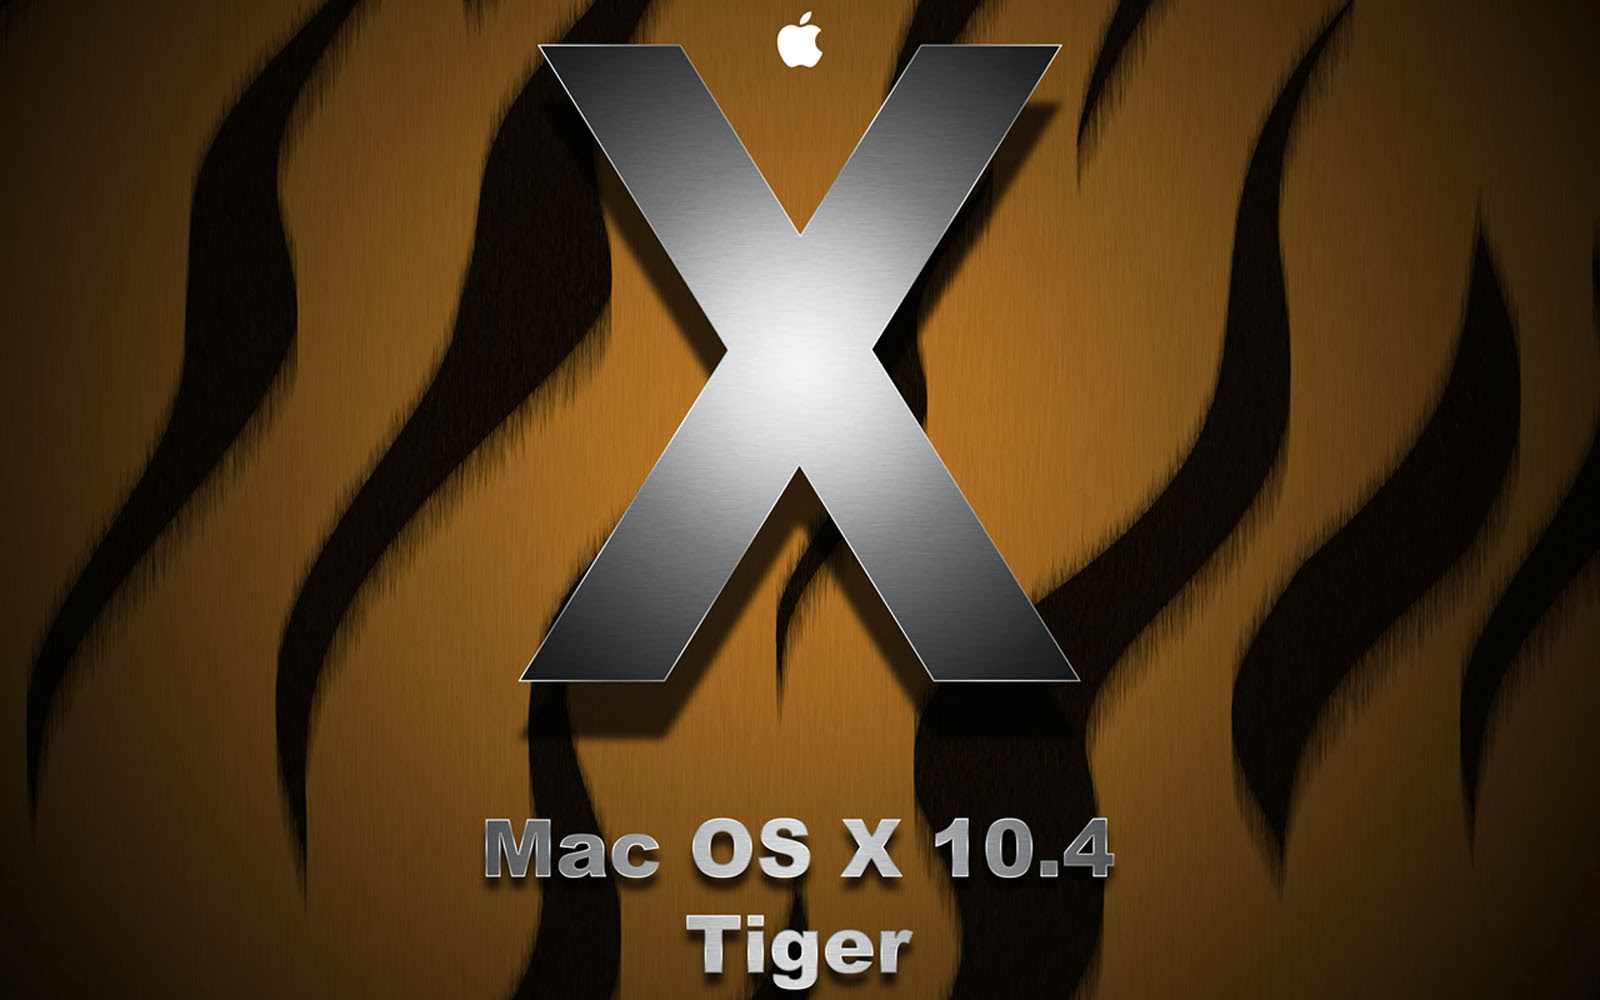 Tag Mac OS X Tiger Wallpapers Backgrounds Photos Imagesand 1600x1000